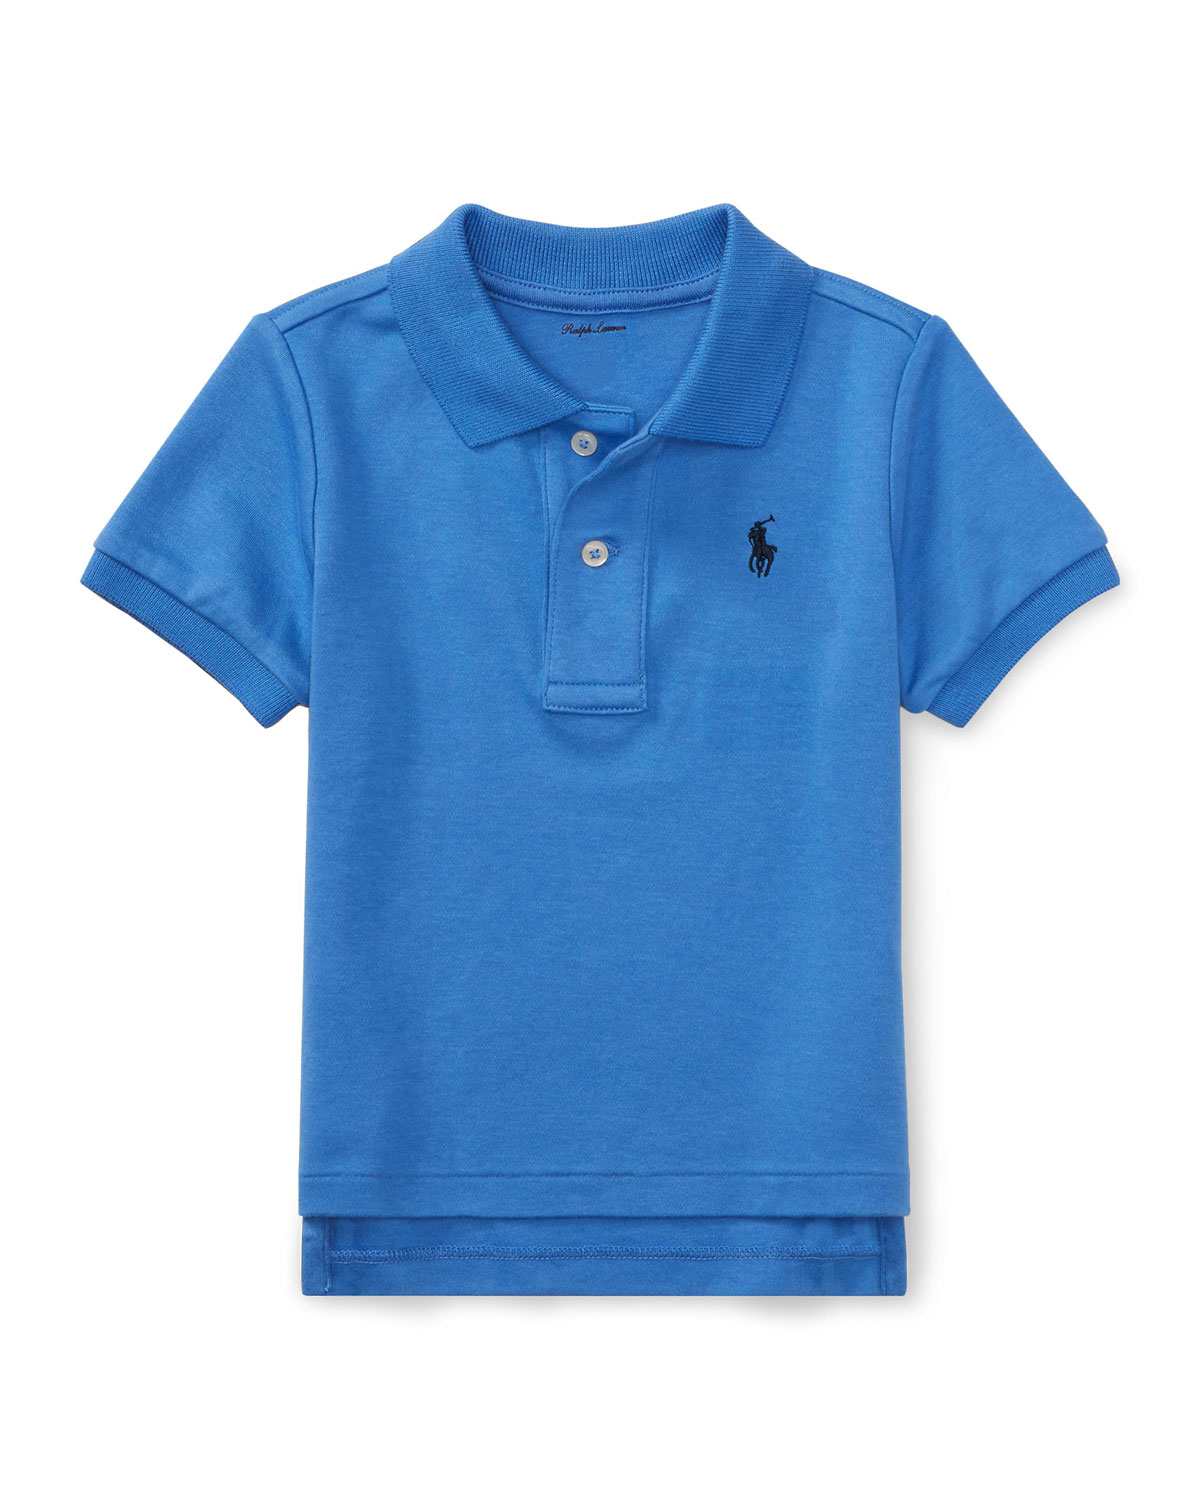 Interlock Polo Knit Shirt, Size 3-24 Months